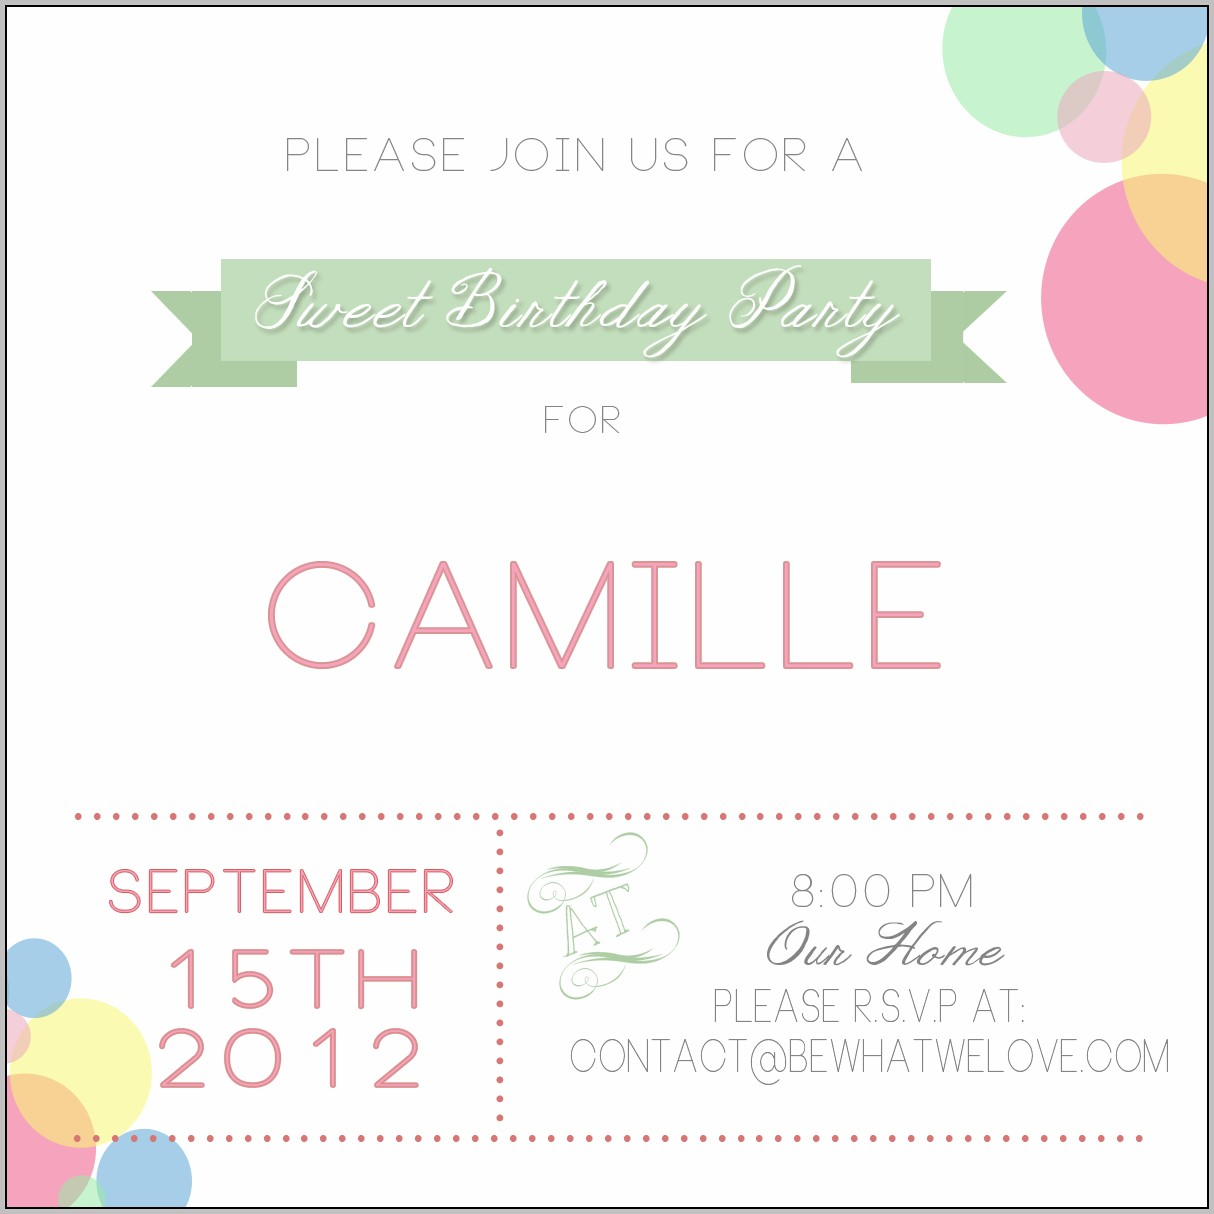 Birthday Party Invitation Template For Email